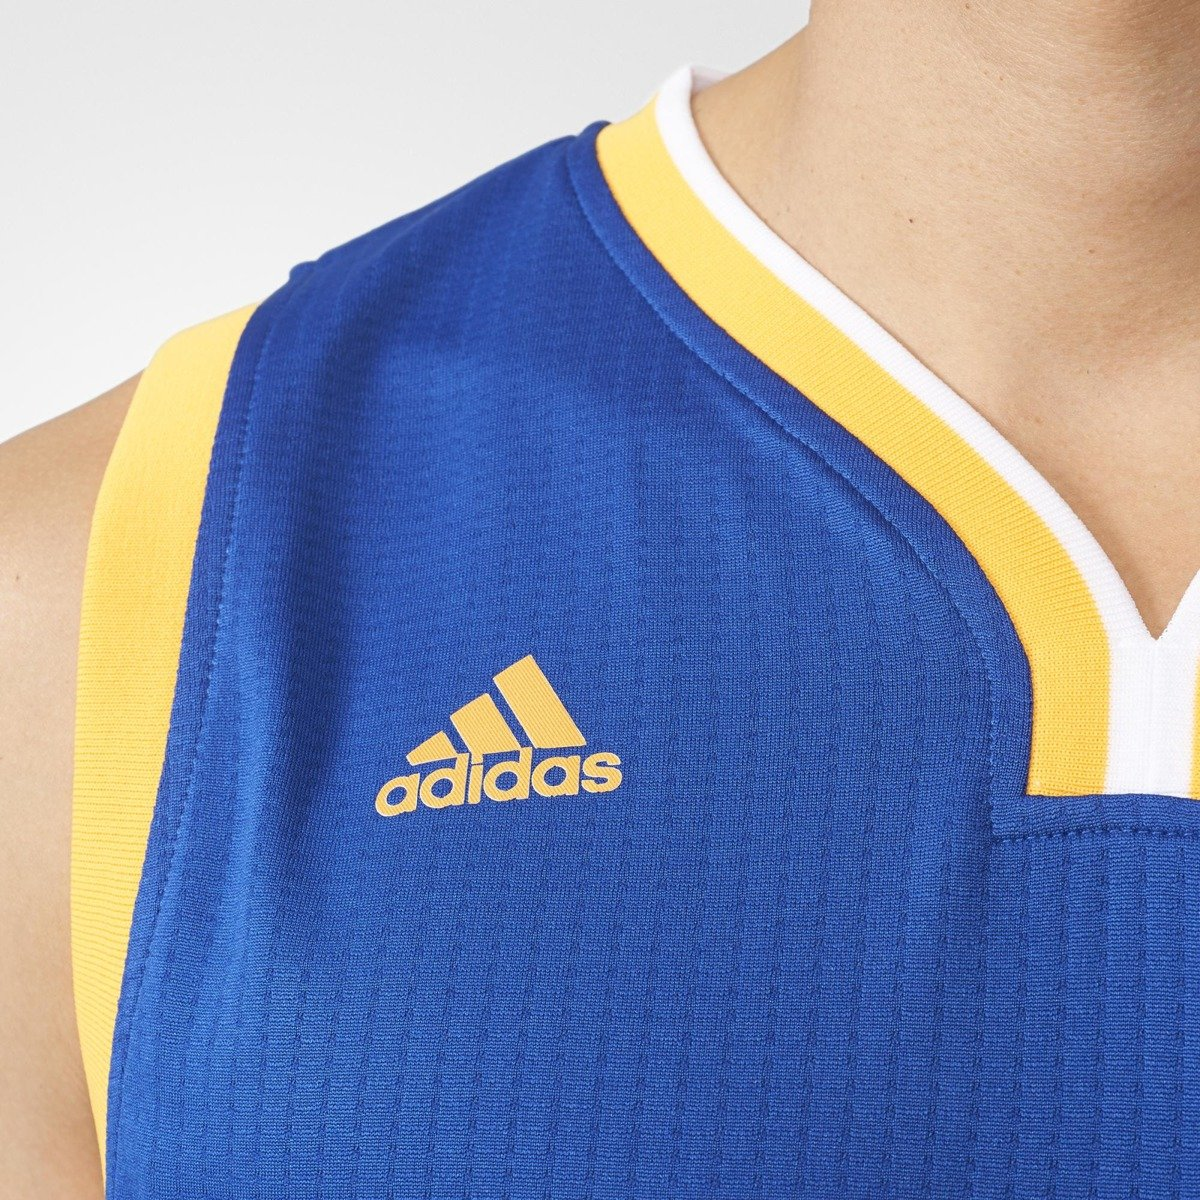 tlwtc Adidas Stephen Curry #30 Golden State Warriors - A45910